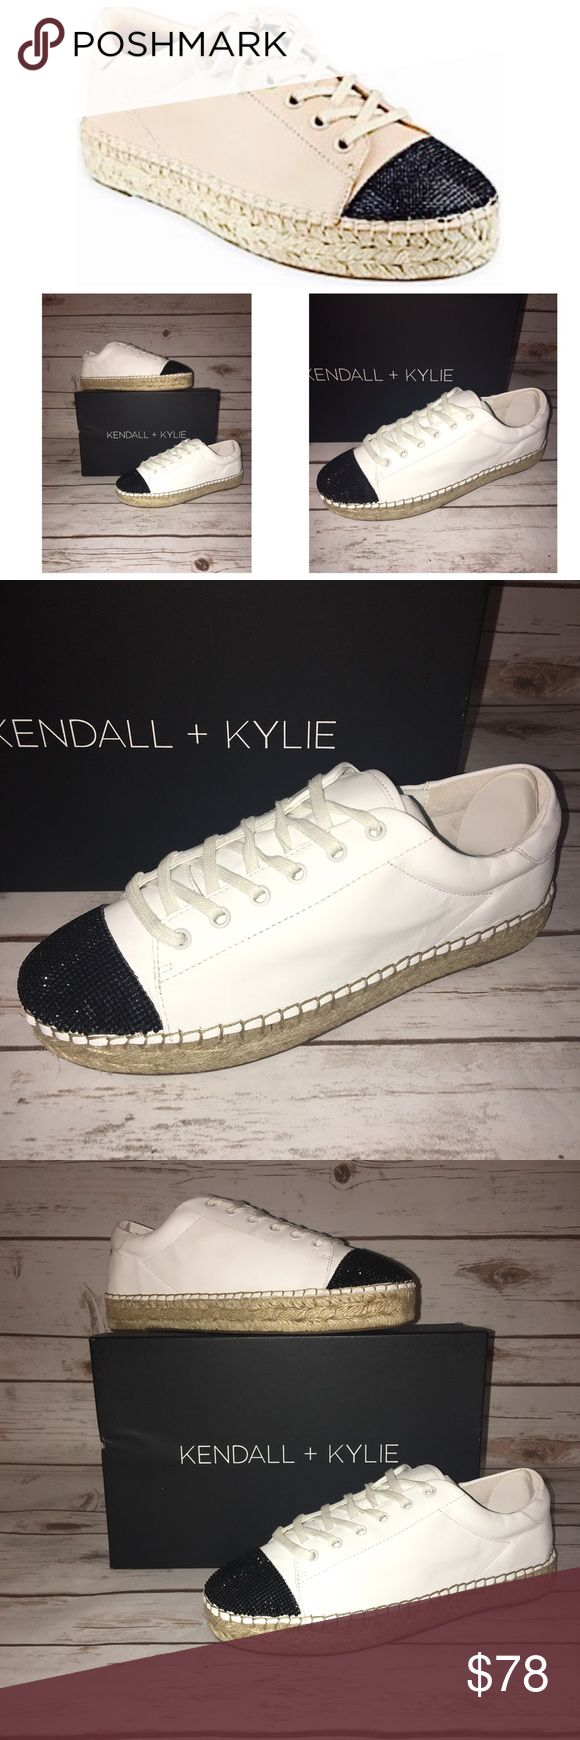 NWT Kendall + Kylie Joslyn Espadrille  Sz 8.5 M New in Box Kendall + Kylie Espadrille Sneaker in White Leather with Black Sparkle Toe Cap...cutest sneaker I've ever seen! Kendall & Kylie Shoes Sneakers